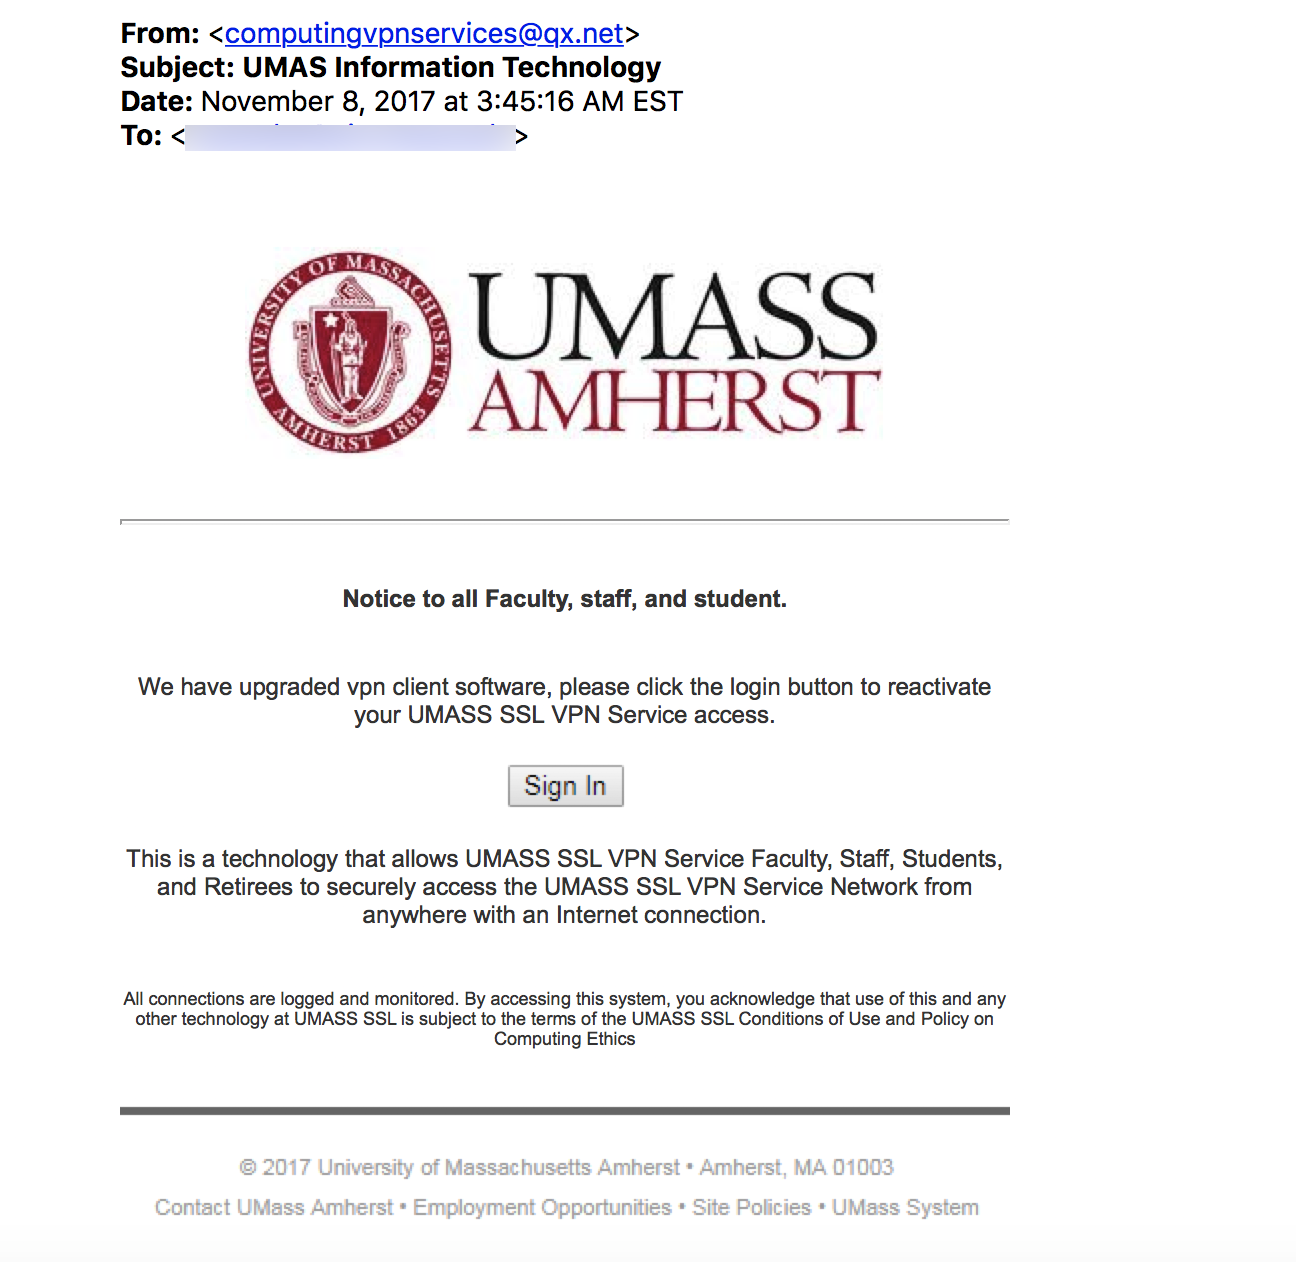 Screenshot of email message. The message comes from a non-umass address, but claims to be UMass Amherst. There is a link in the message which does not show the address.